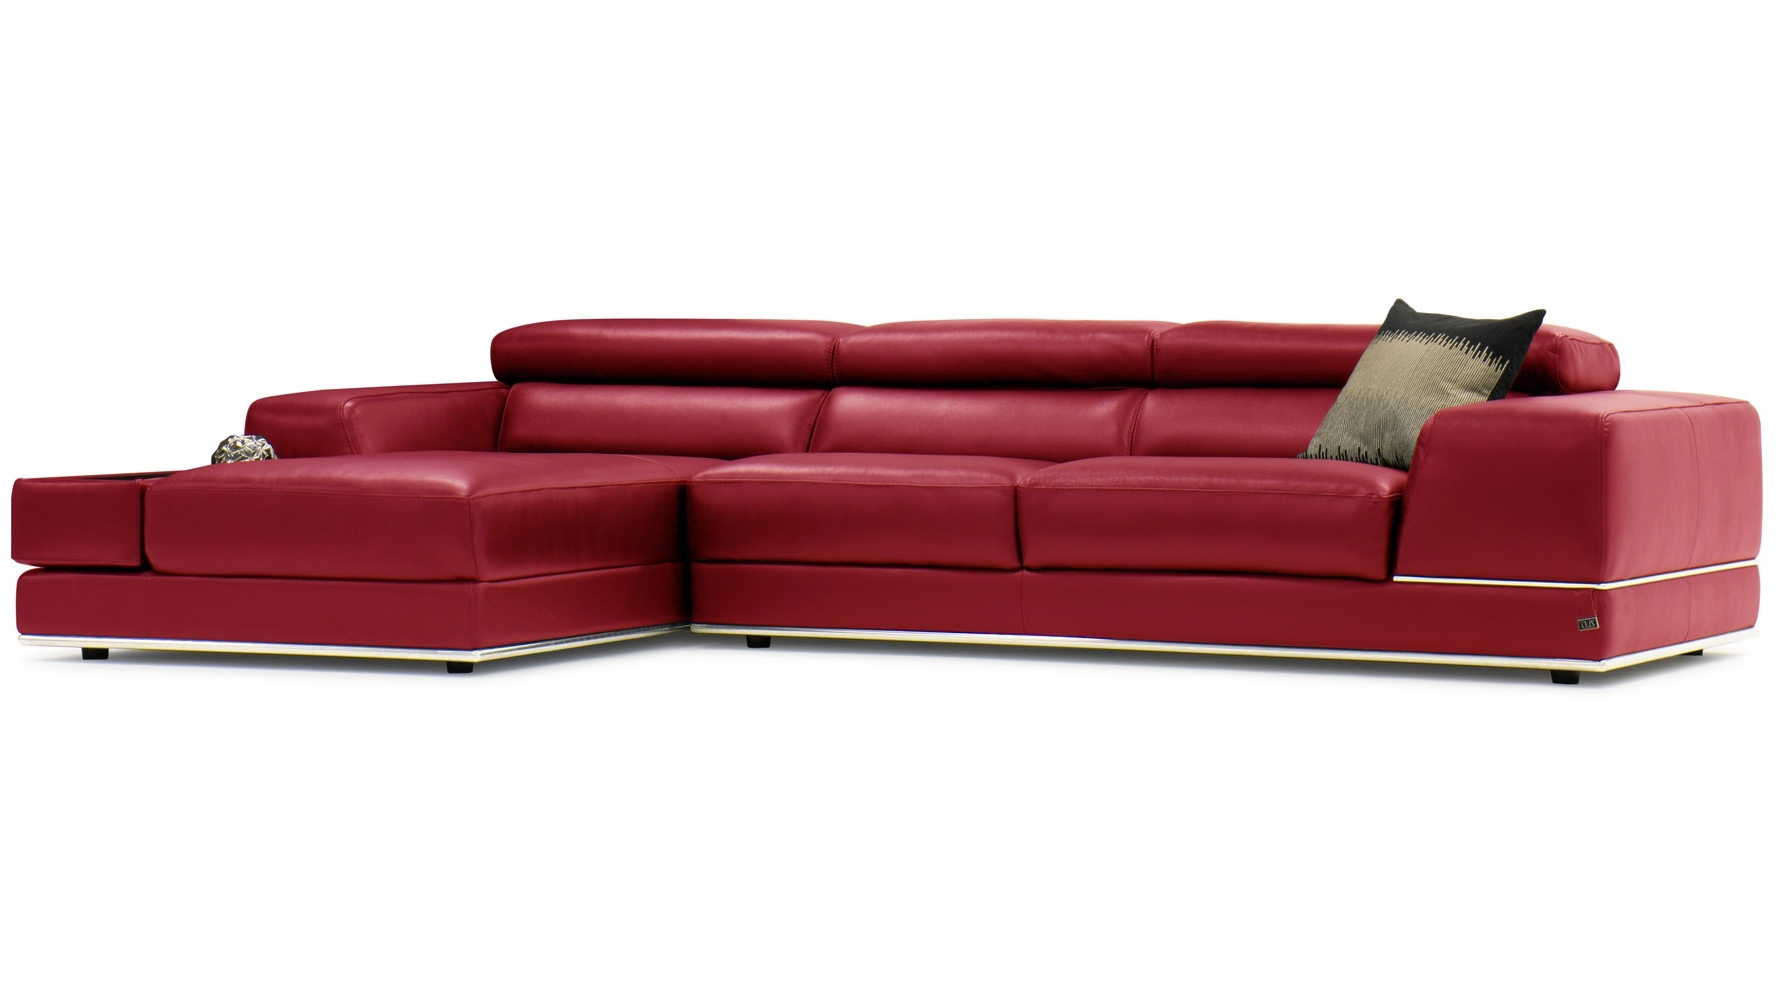 Red Leather Sofas Throughout Fashionable Encore Red Leather Sofa (View 8 of 15)